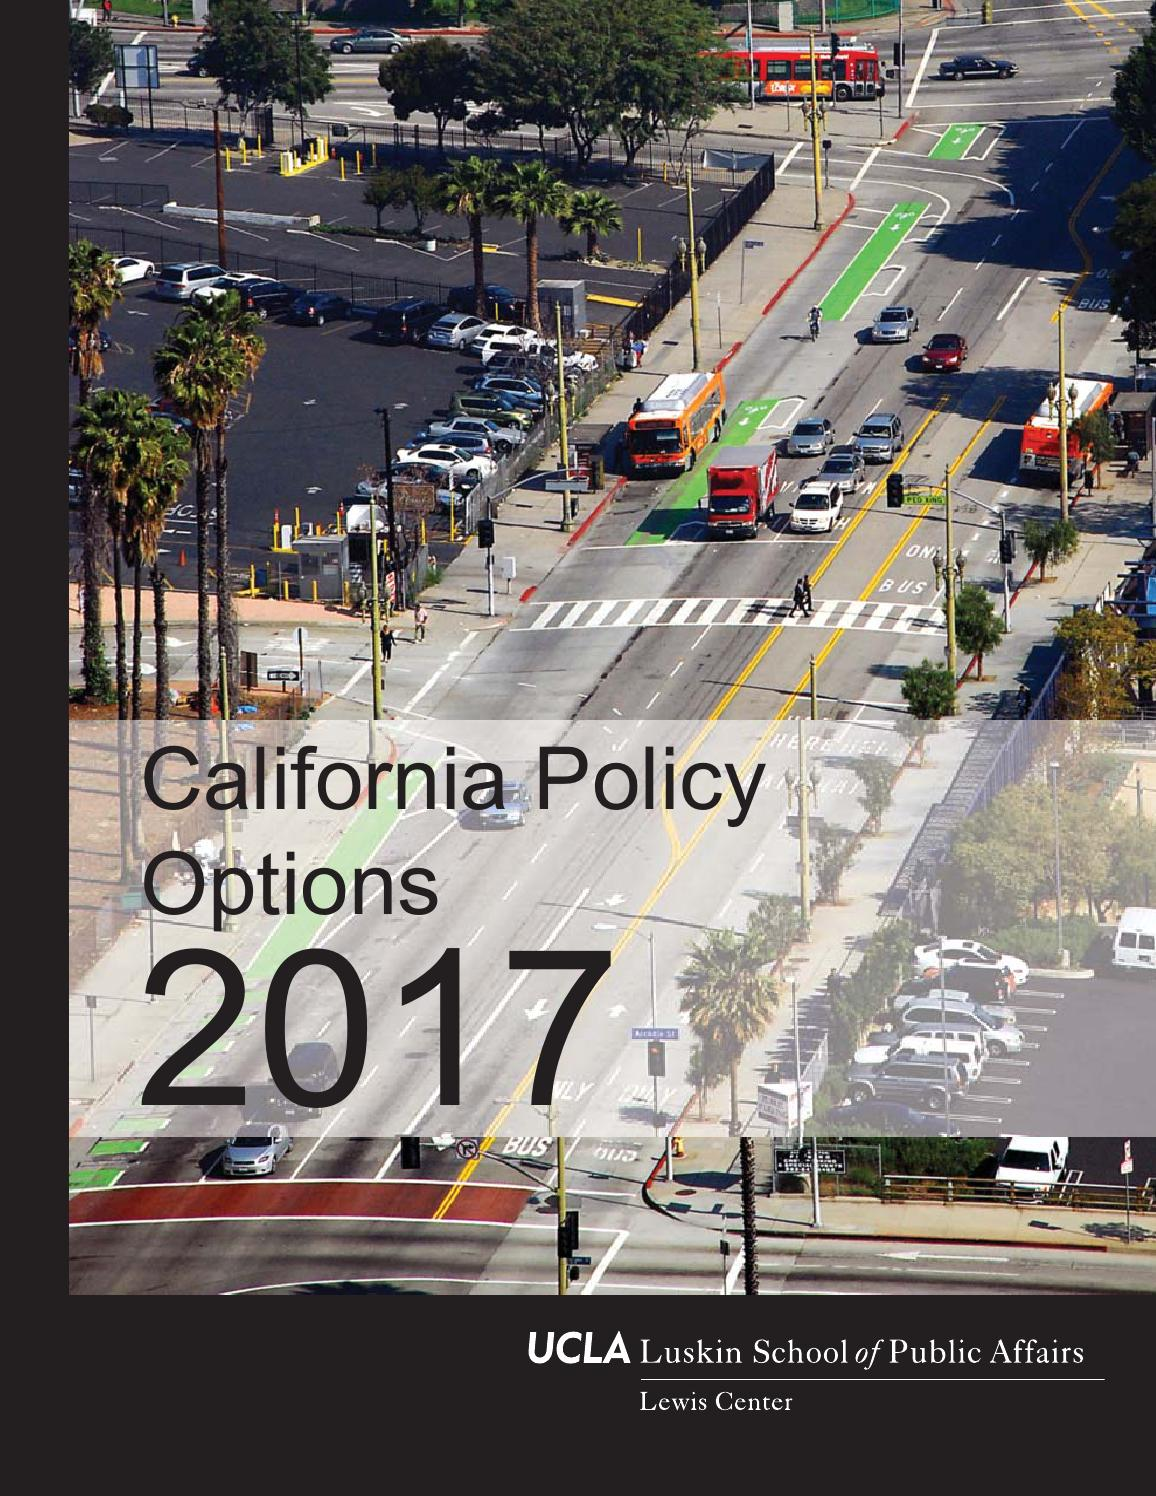 California policy options 2017 by UCLA Luskin School of